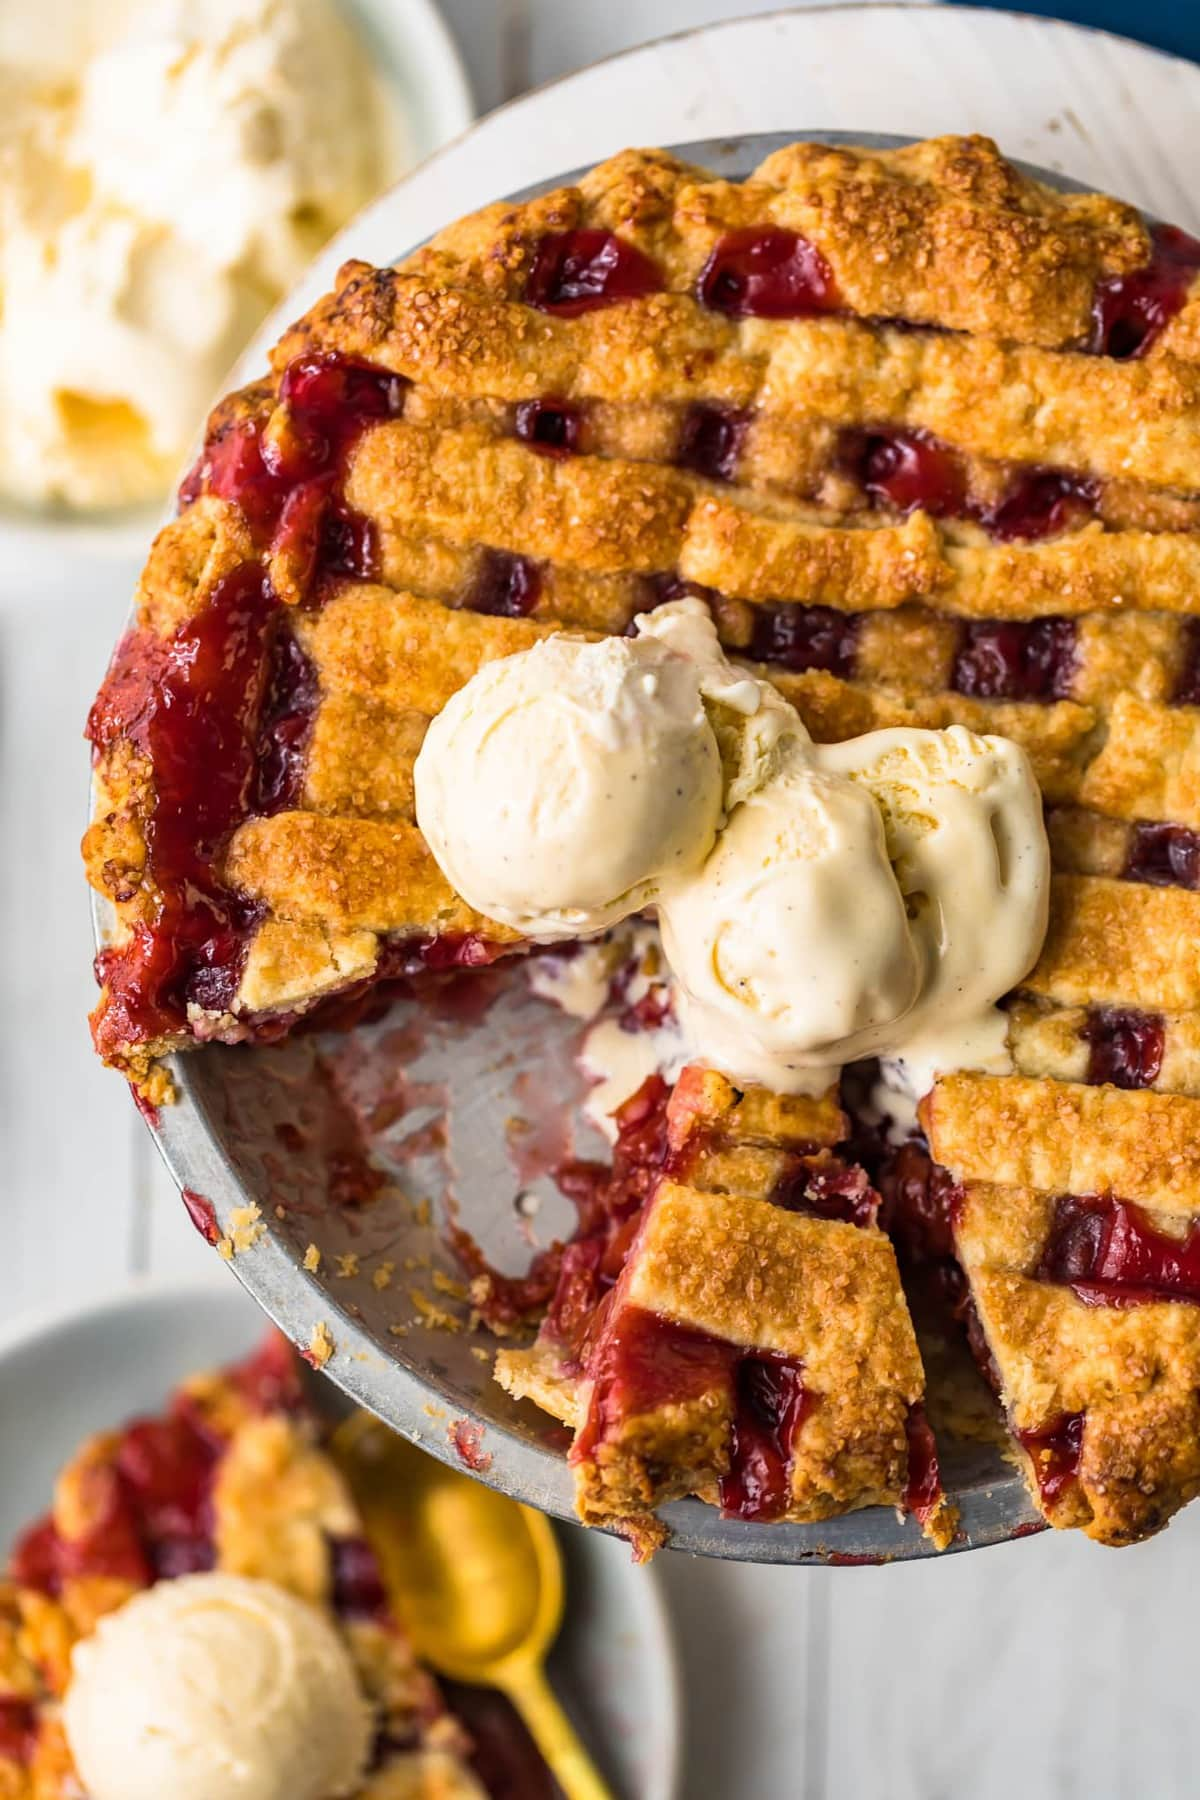 A homemade cherry pie with two scoops of ice cream